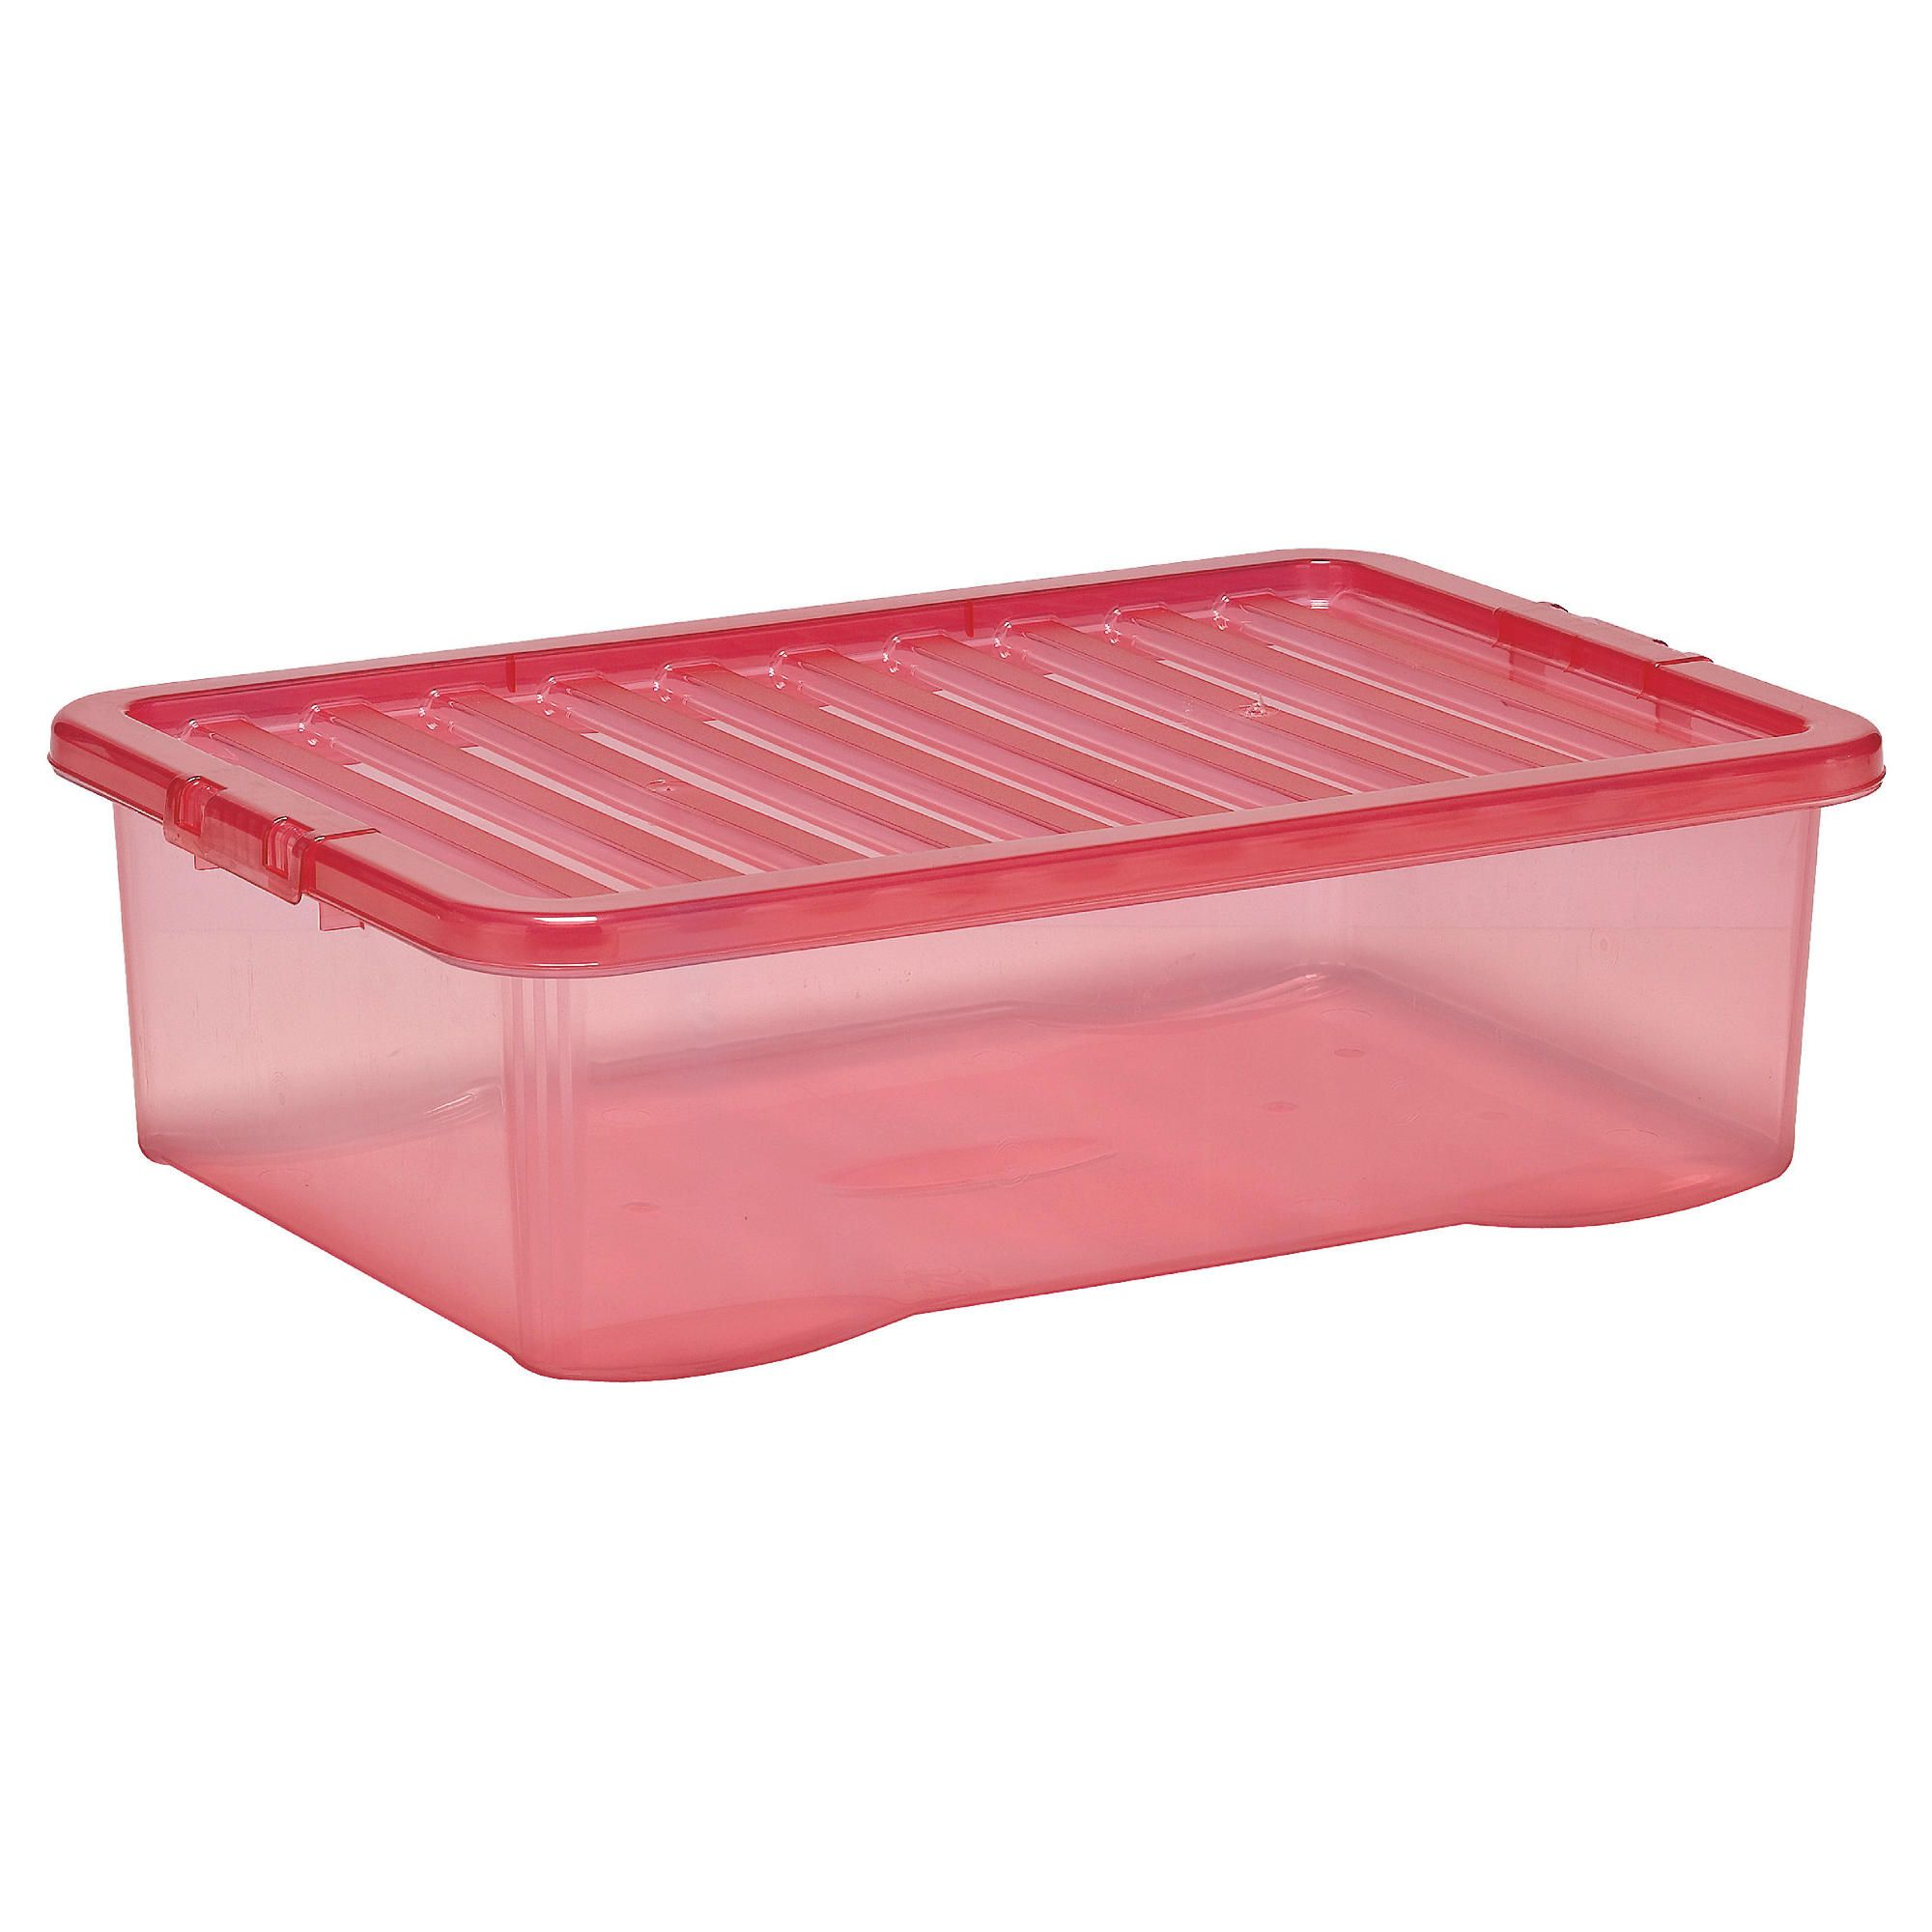 Wham Crystal 32L Underbed storage box with lid, pink